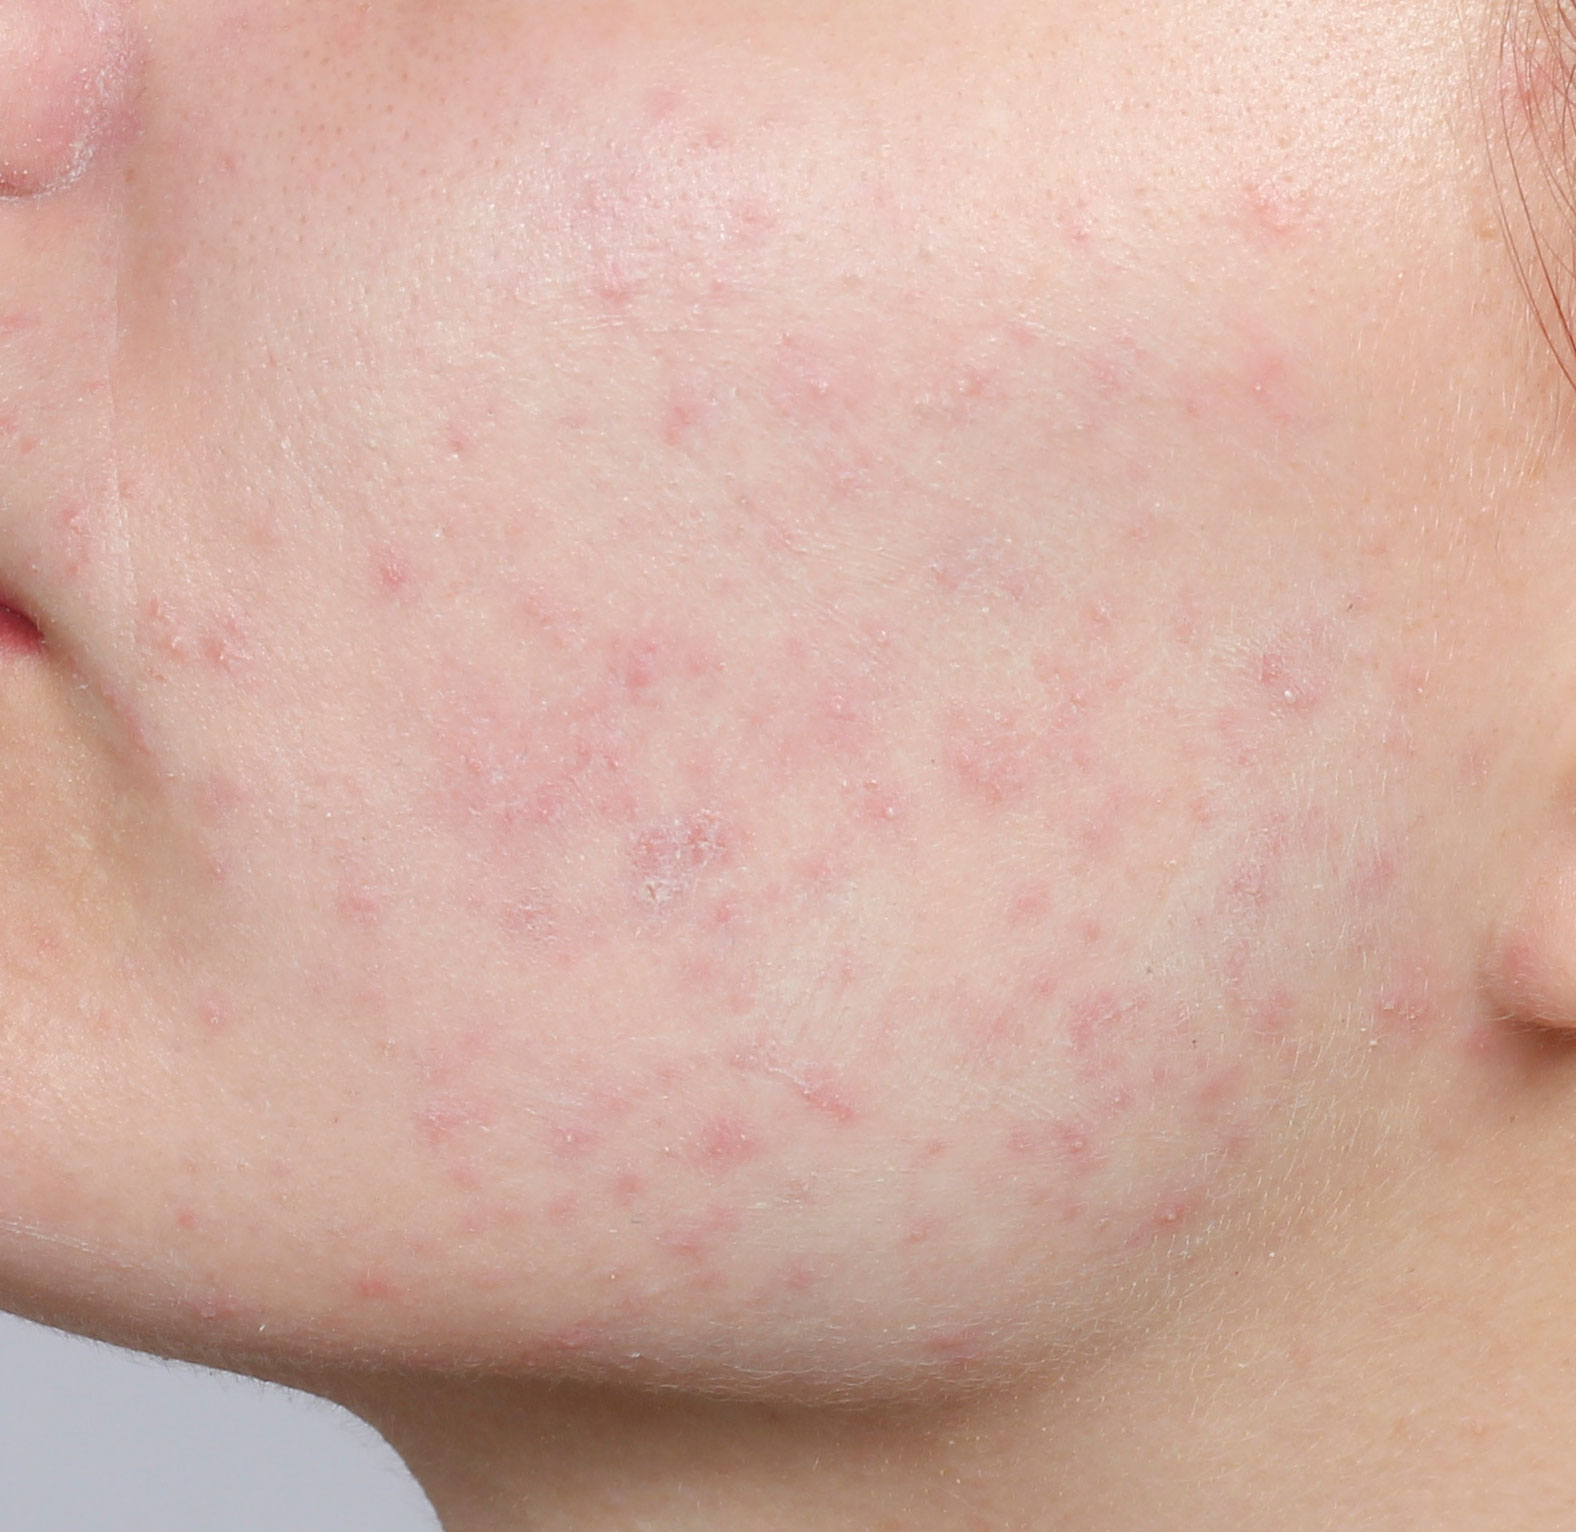 cover pimples with green face primer